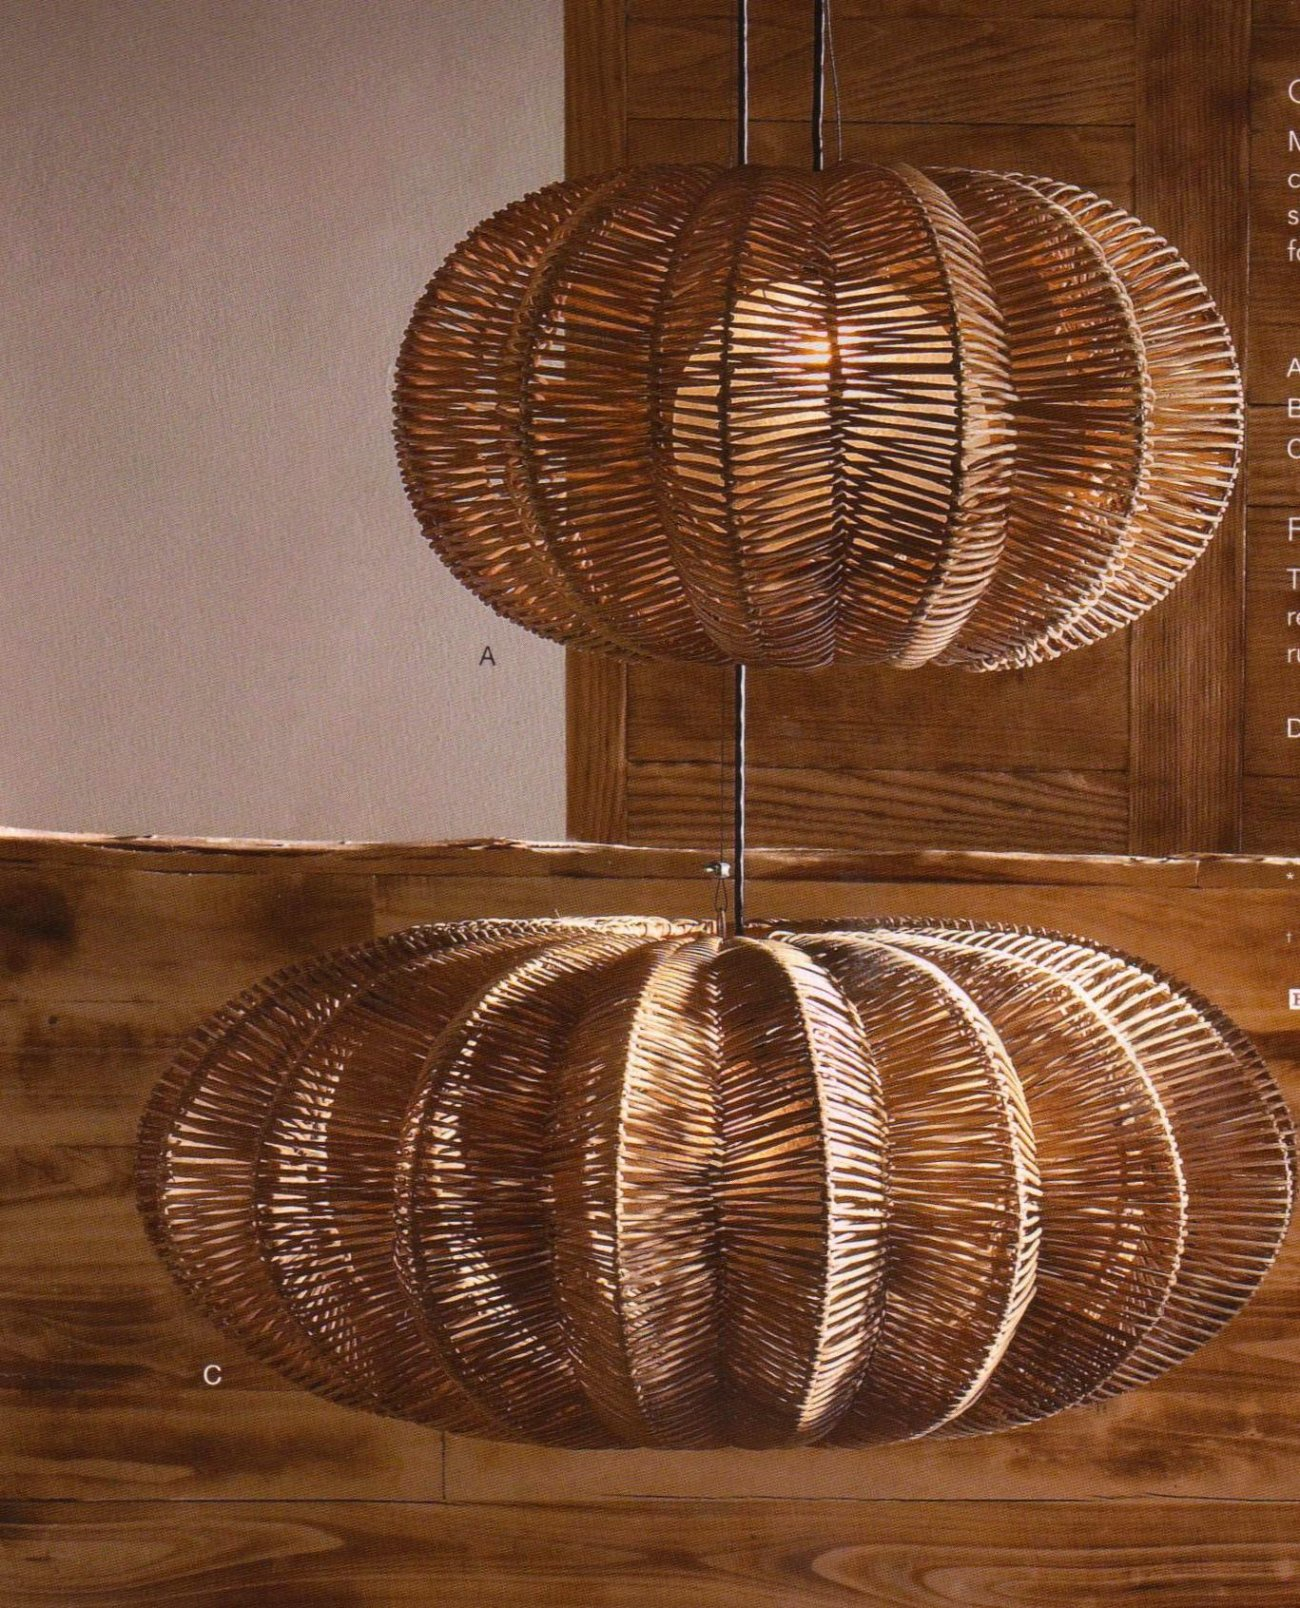 Costa verde chandelier modern shape lamp constructed of natural modern shape lamp constructed of natural plant fibers woven around a wire frame large 31dia x 14h 420 keyboard keysfo Choice Image